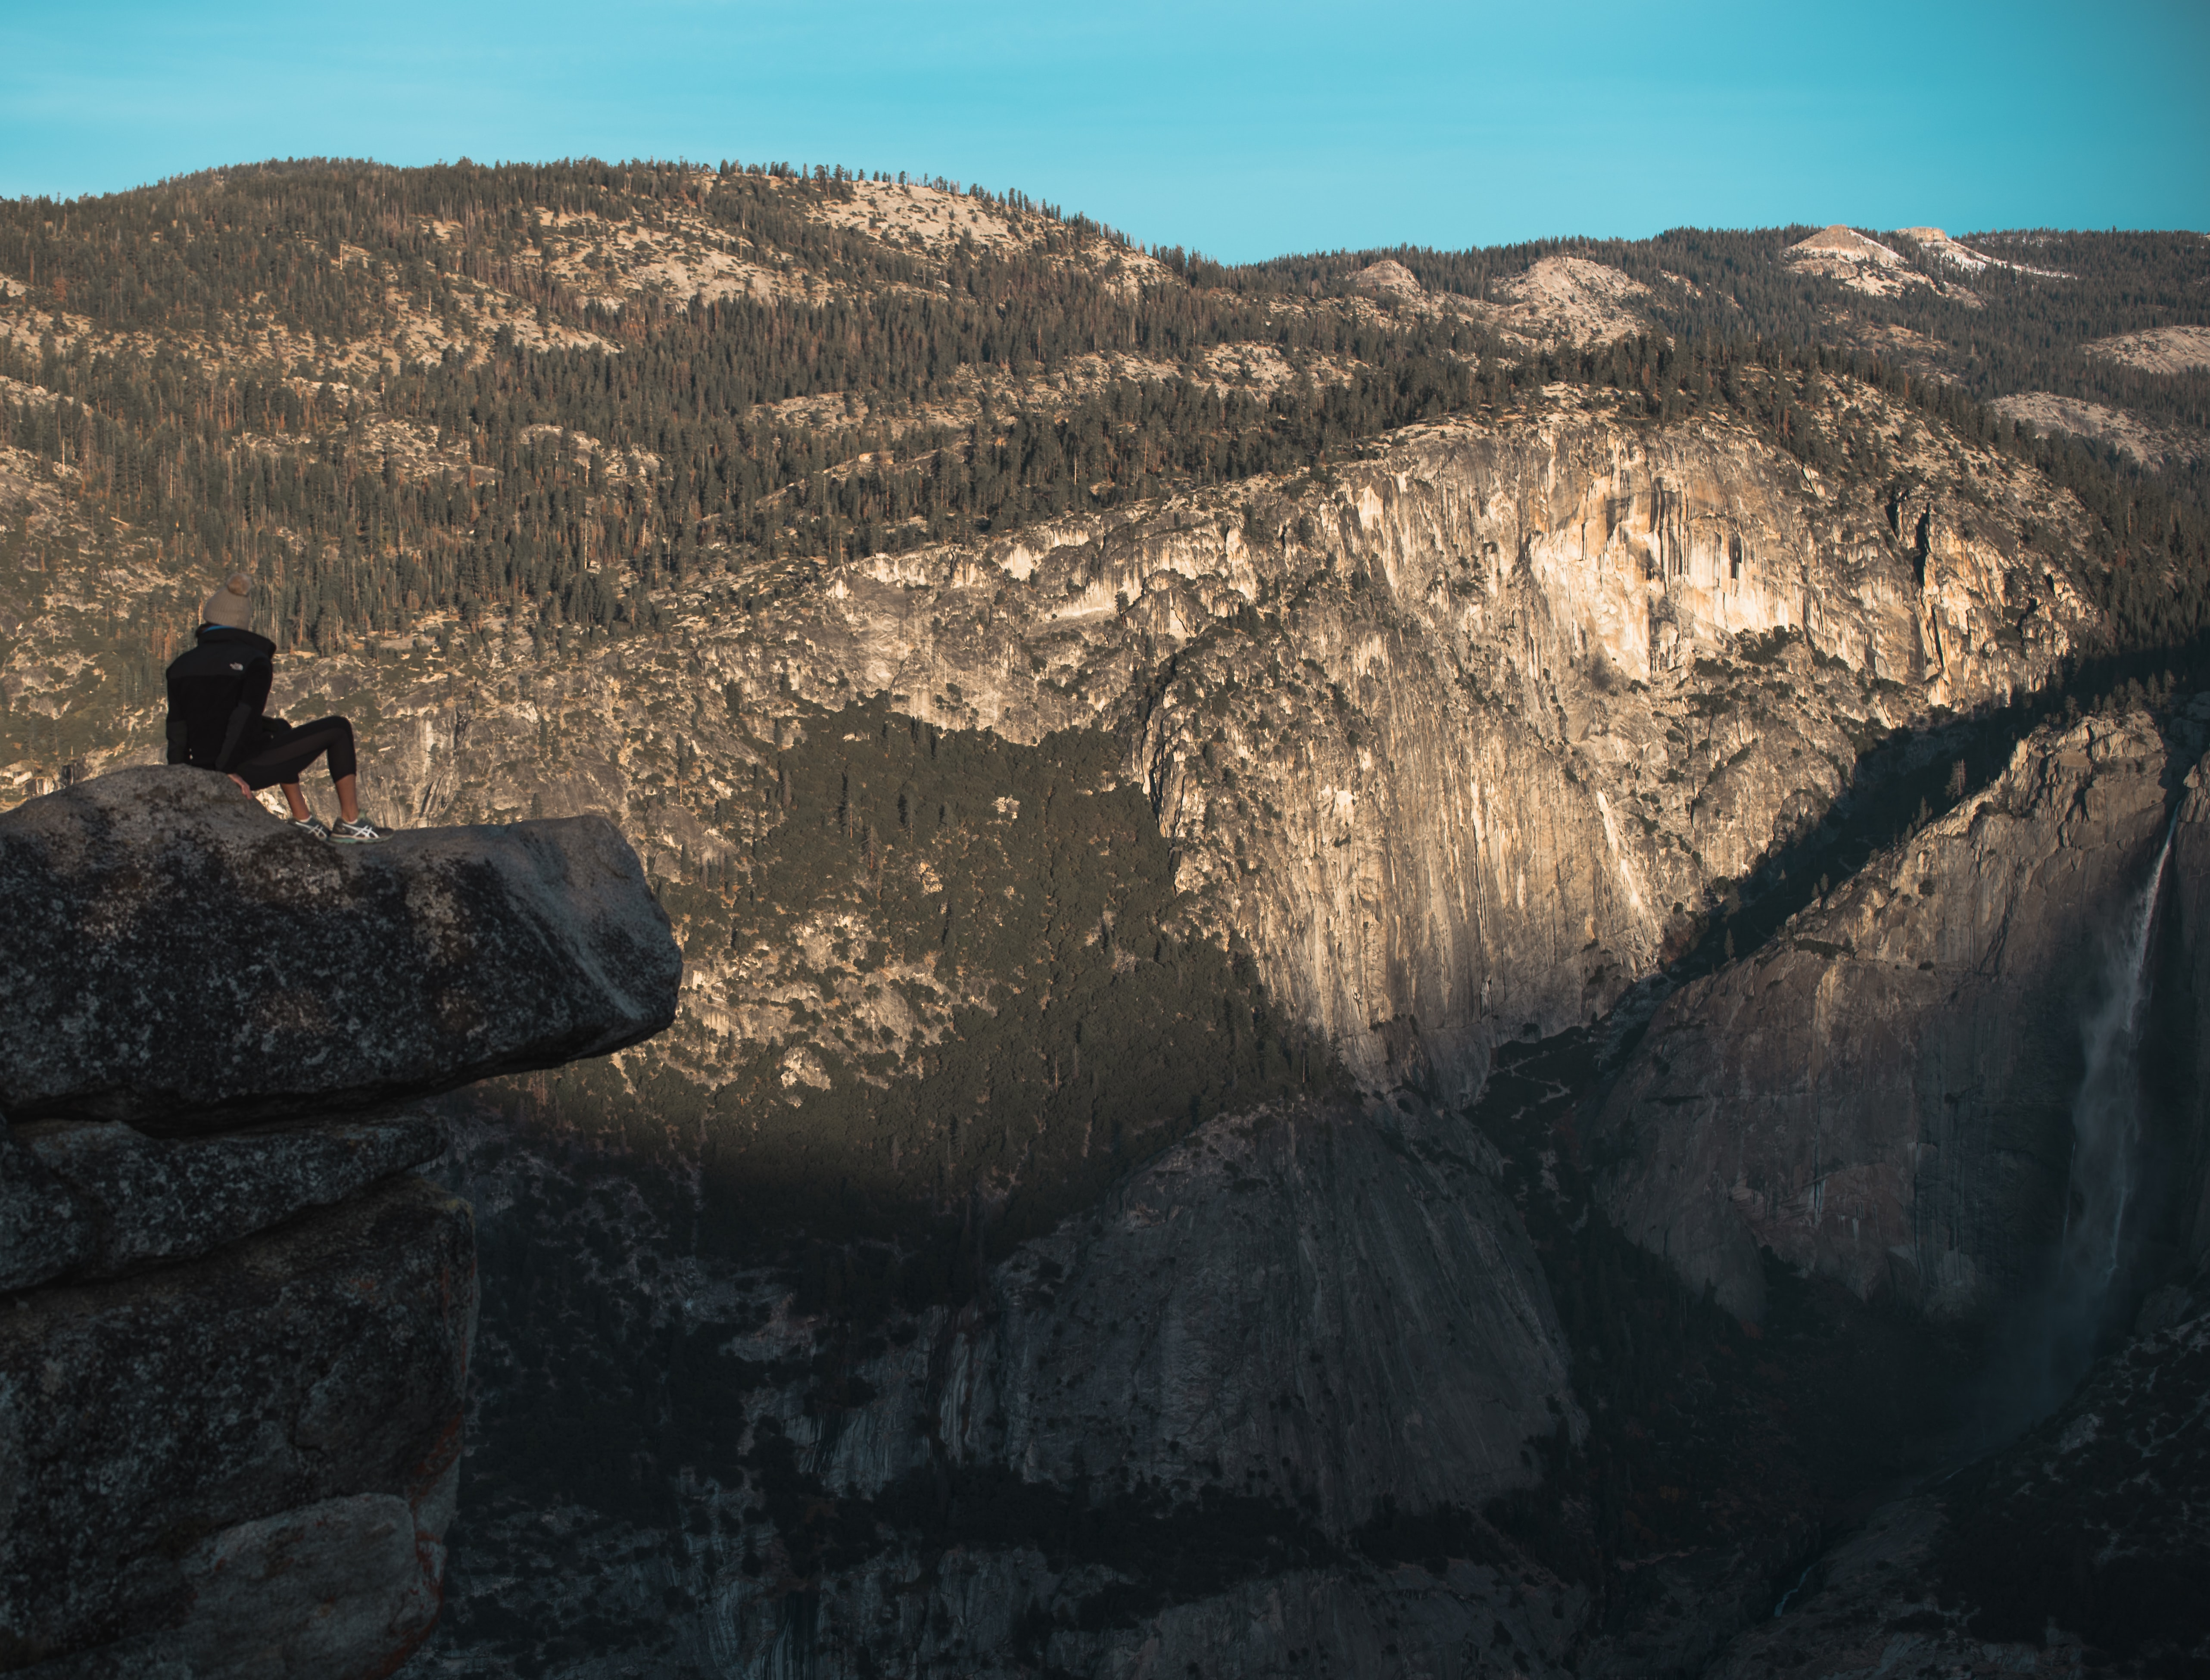 person sitting on cliff